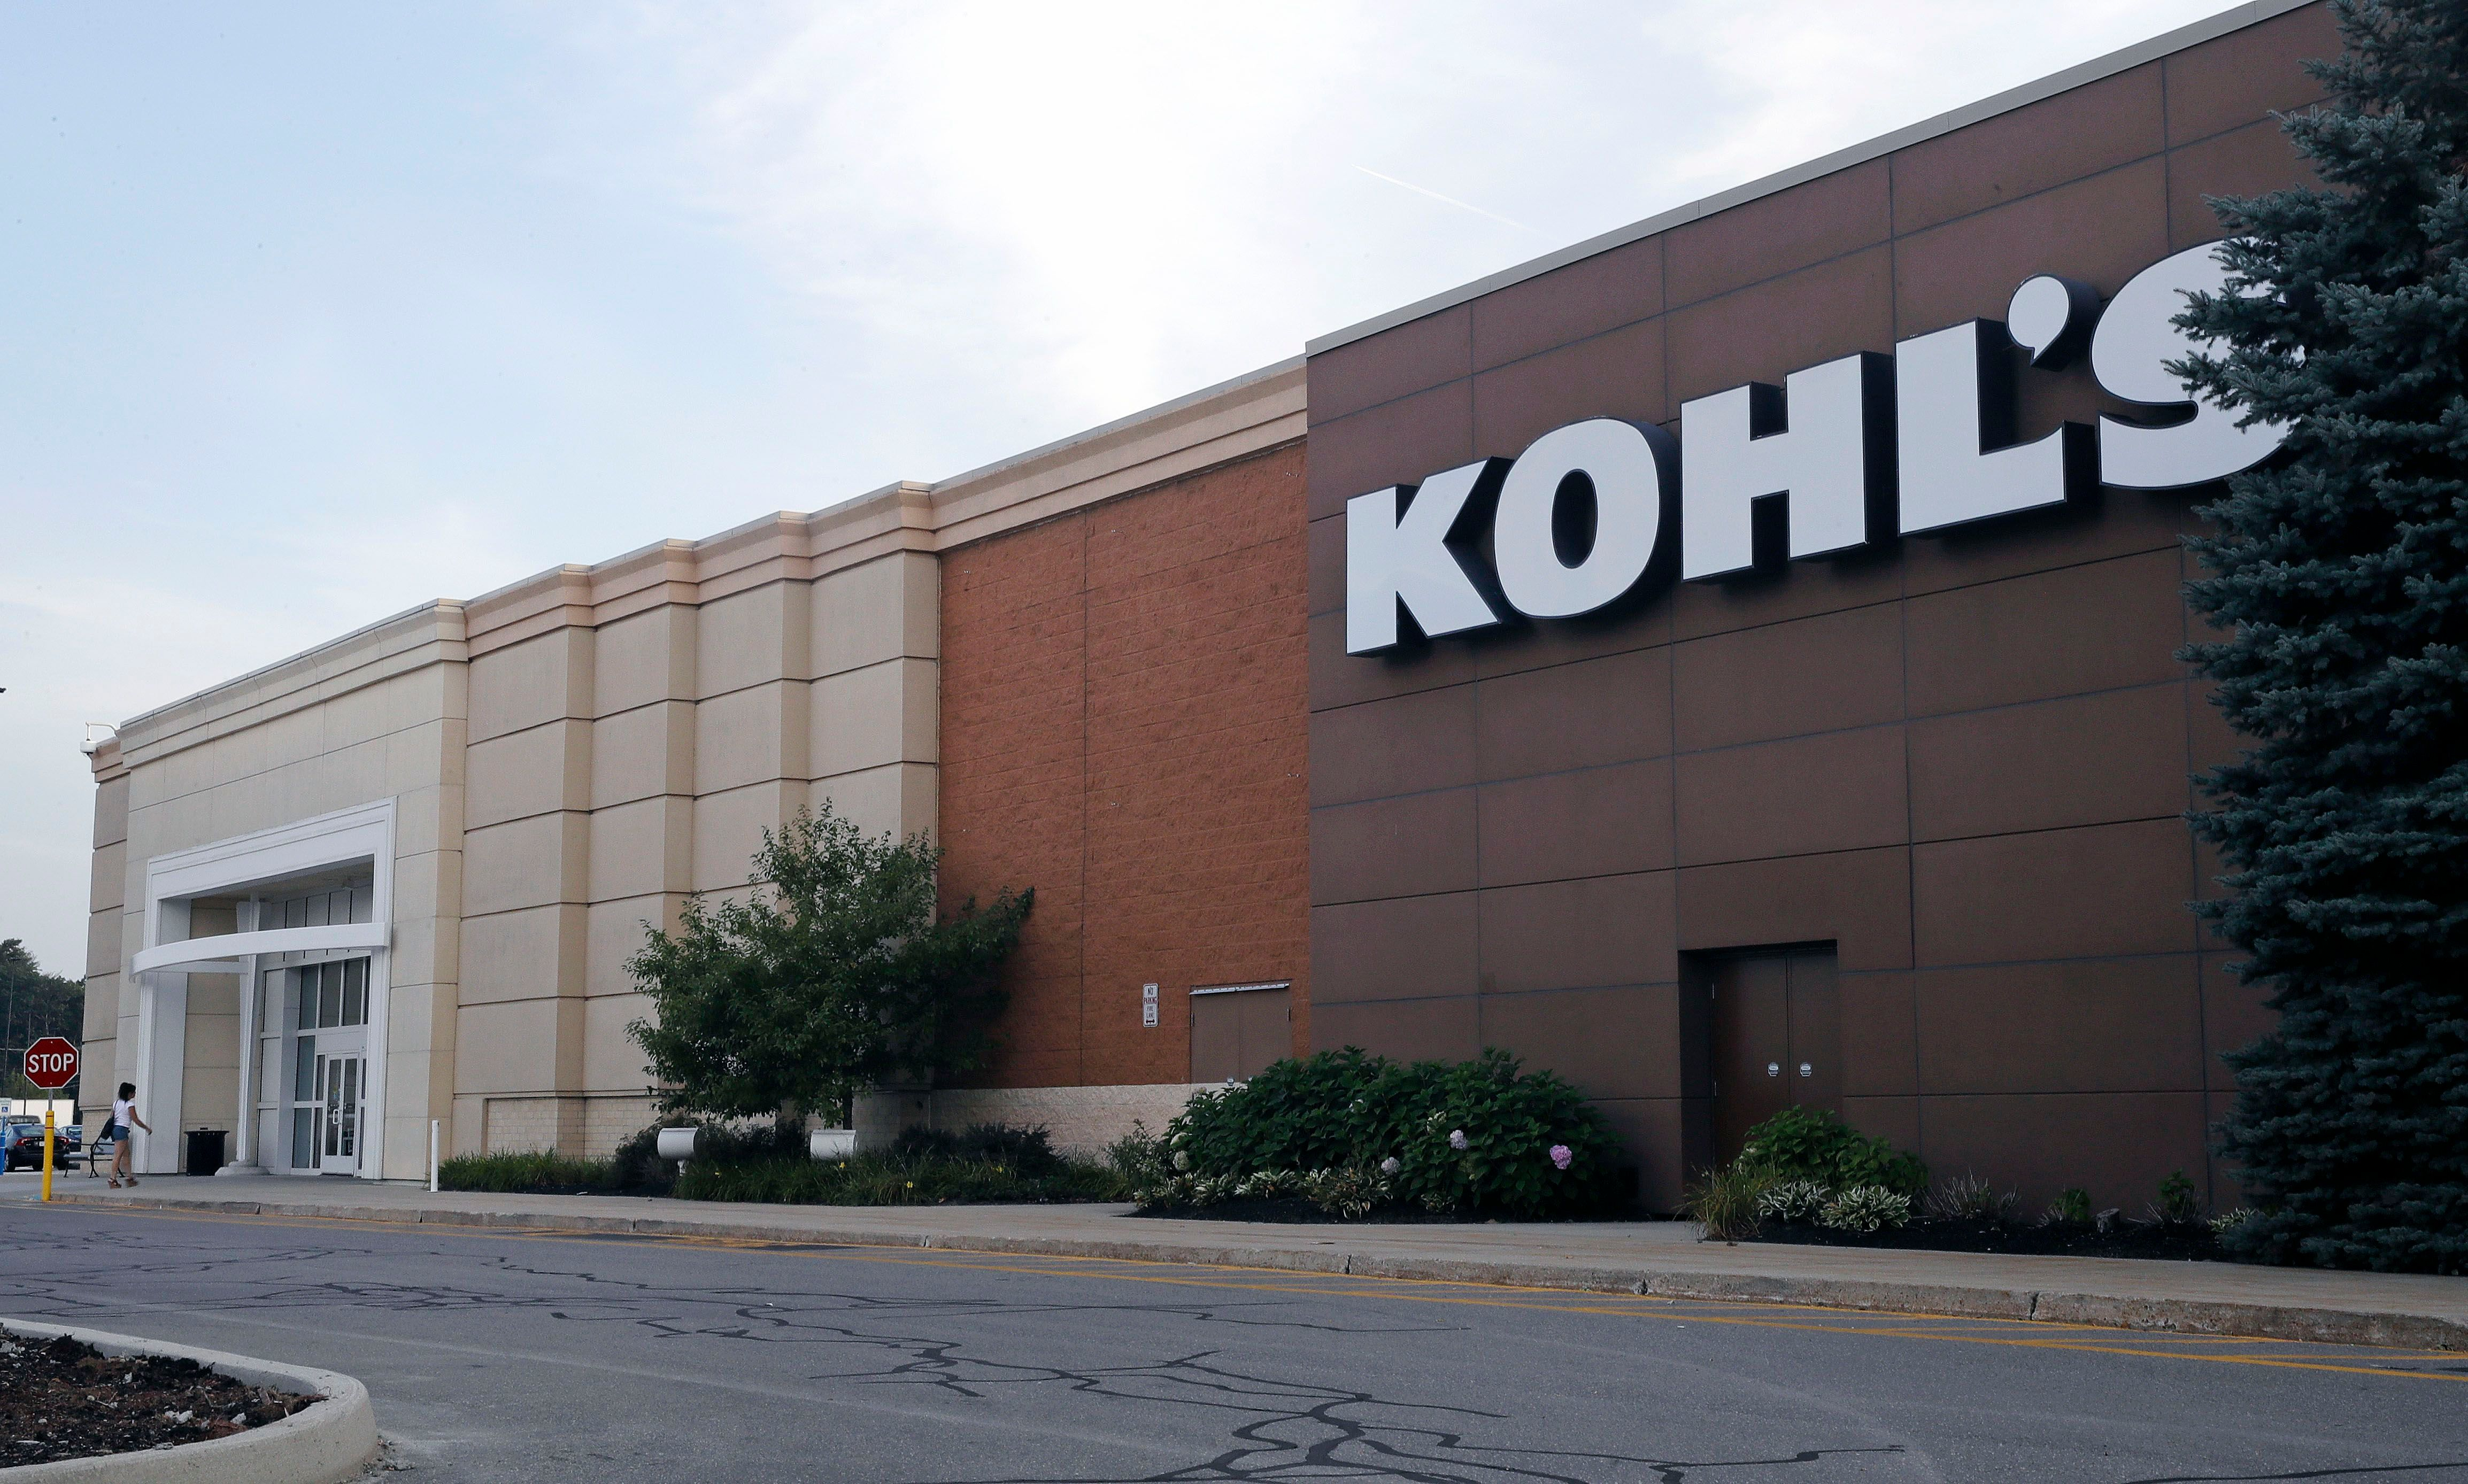 This, photo, shows a Kohl's retail store in Salem, N.H. Kohl's long-time CEO Kevin Mansell is retiring and will be replaced by Michelle Gass, a former Starbucks executive who has been with the company since 2013. The company says the change in leadership will take place in May 2018Kohls CEO, Salem, USA - 22 Aug 2017